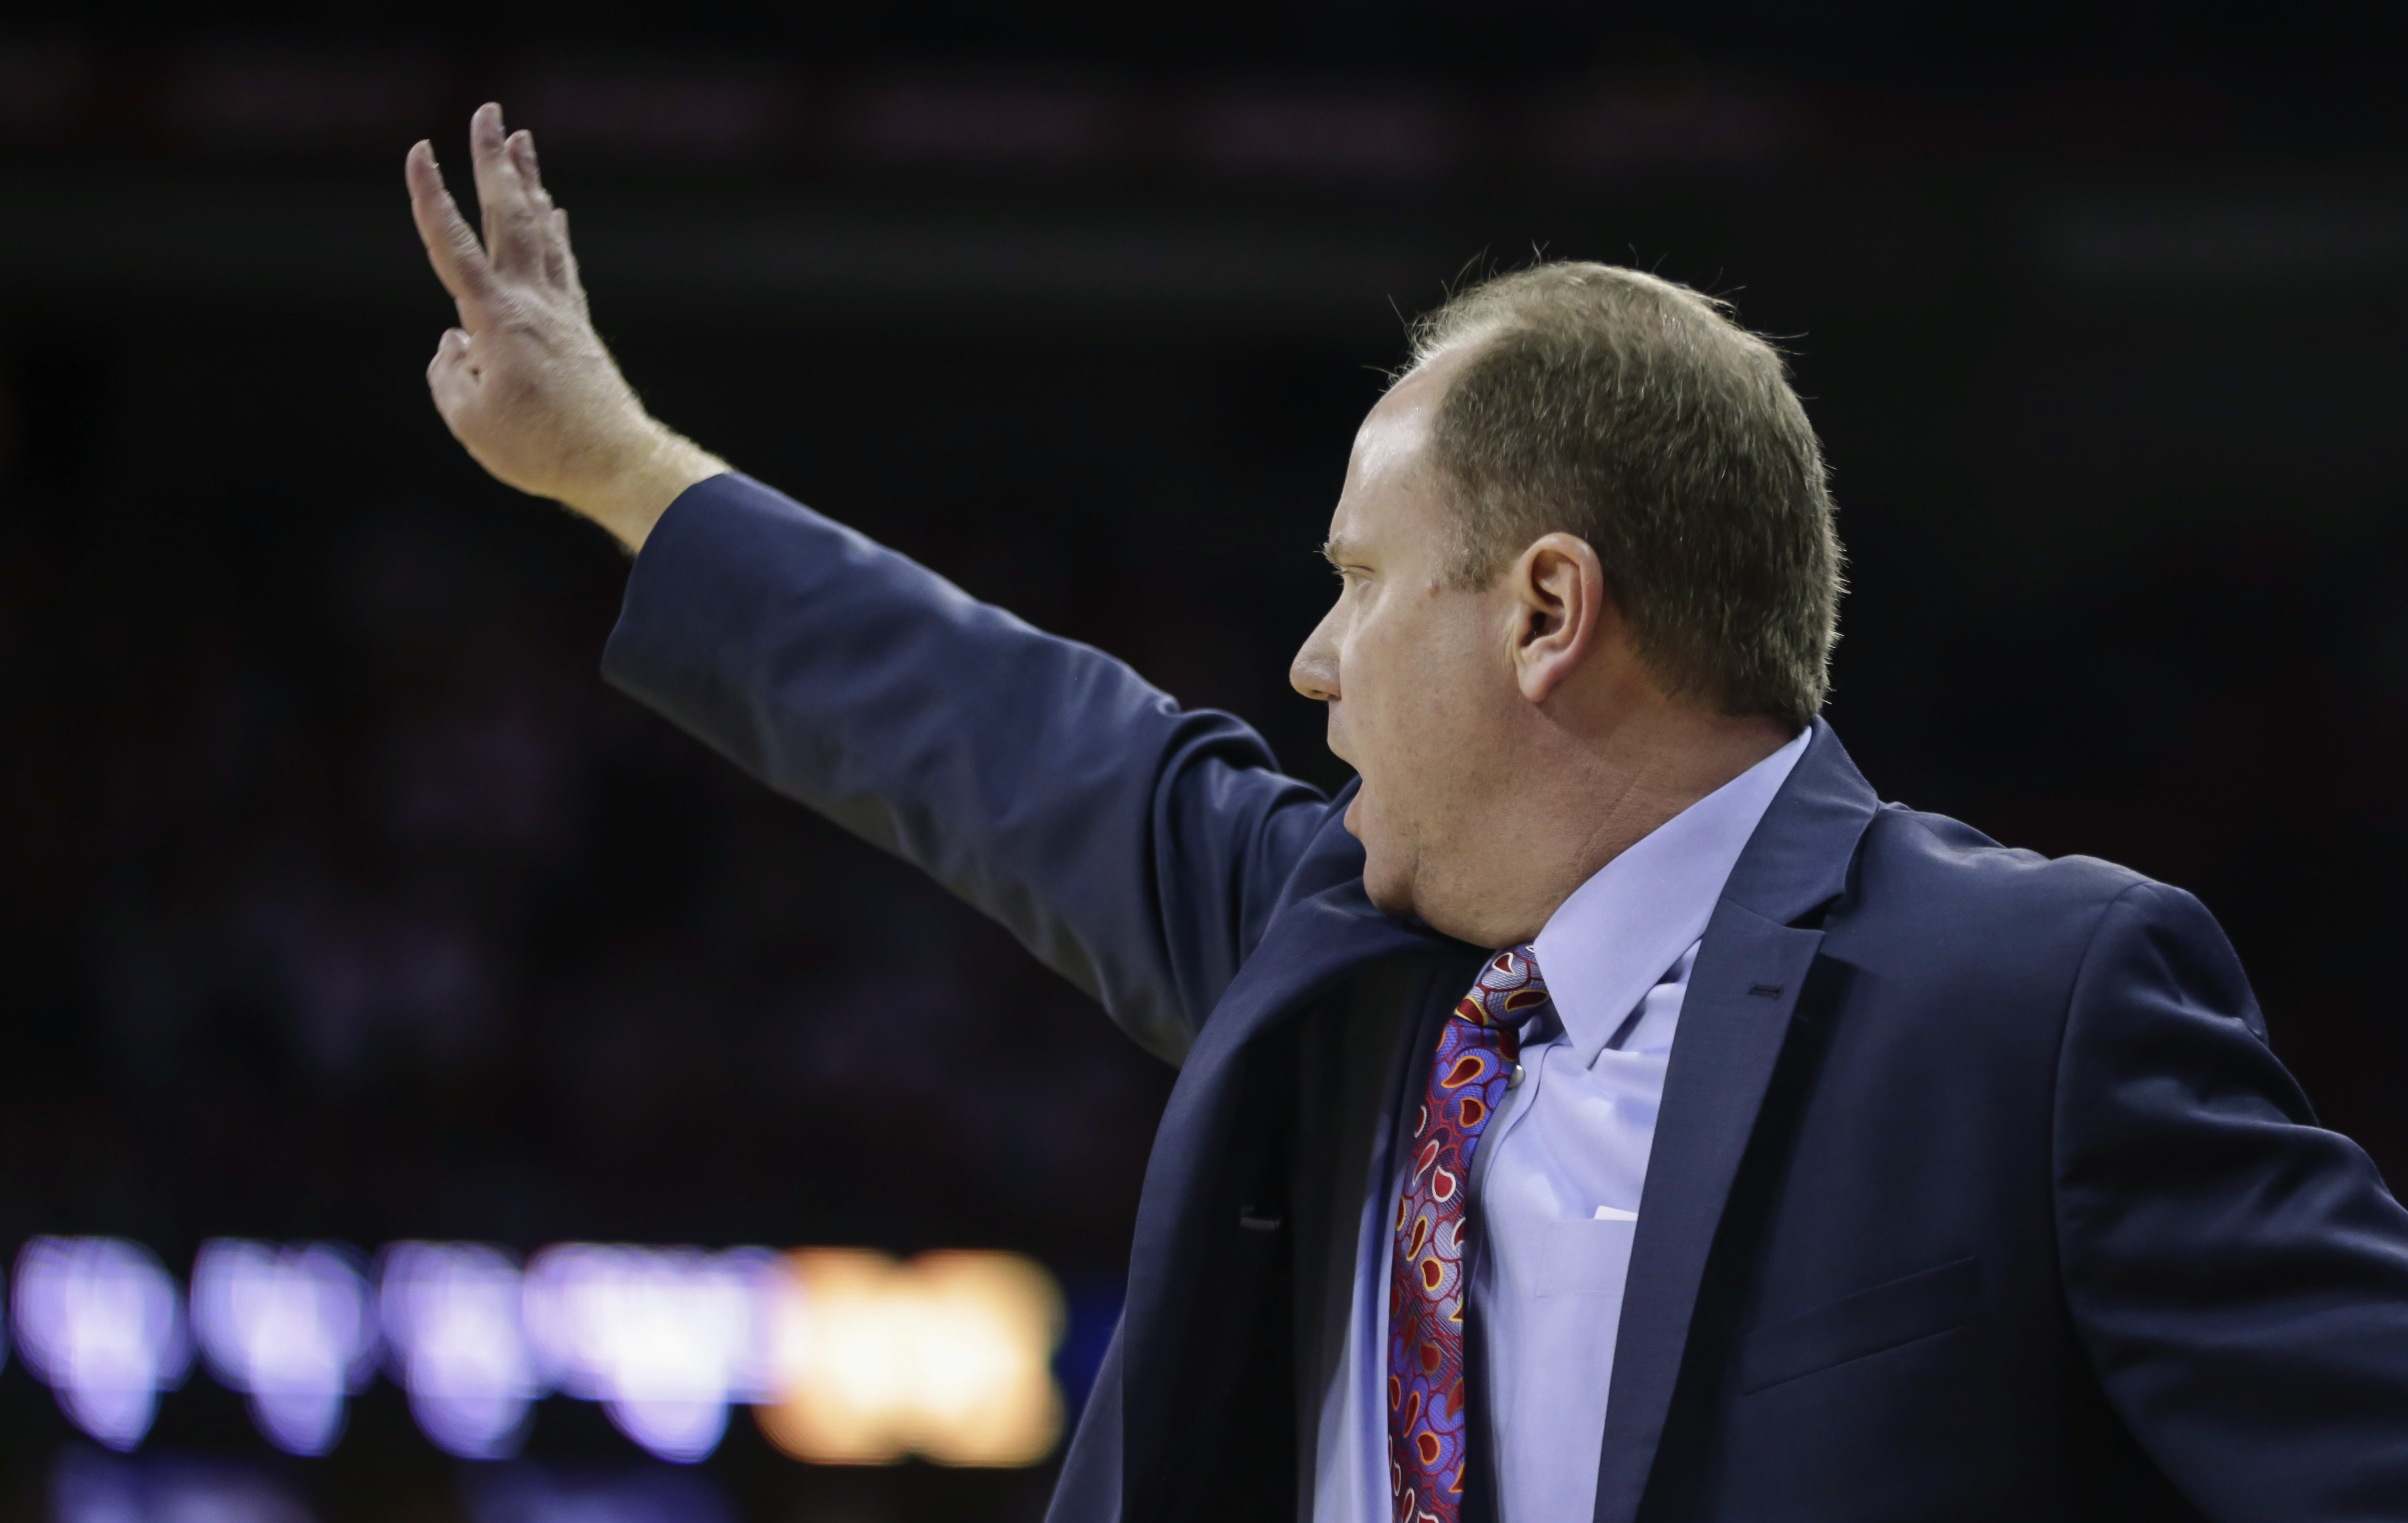 Wisconsin interim head coach Greg Gard signals to his team during the second half of an NCAA college basketball game against Michigan on Sunday, Feb. 28, 2016, in Madison, Wis. Wisconsin won 68-57. (AP Photo/Andy Manis)